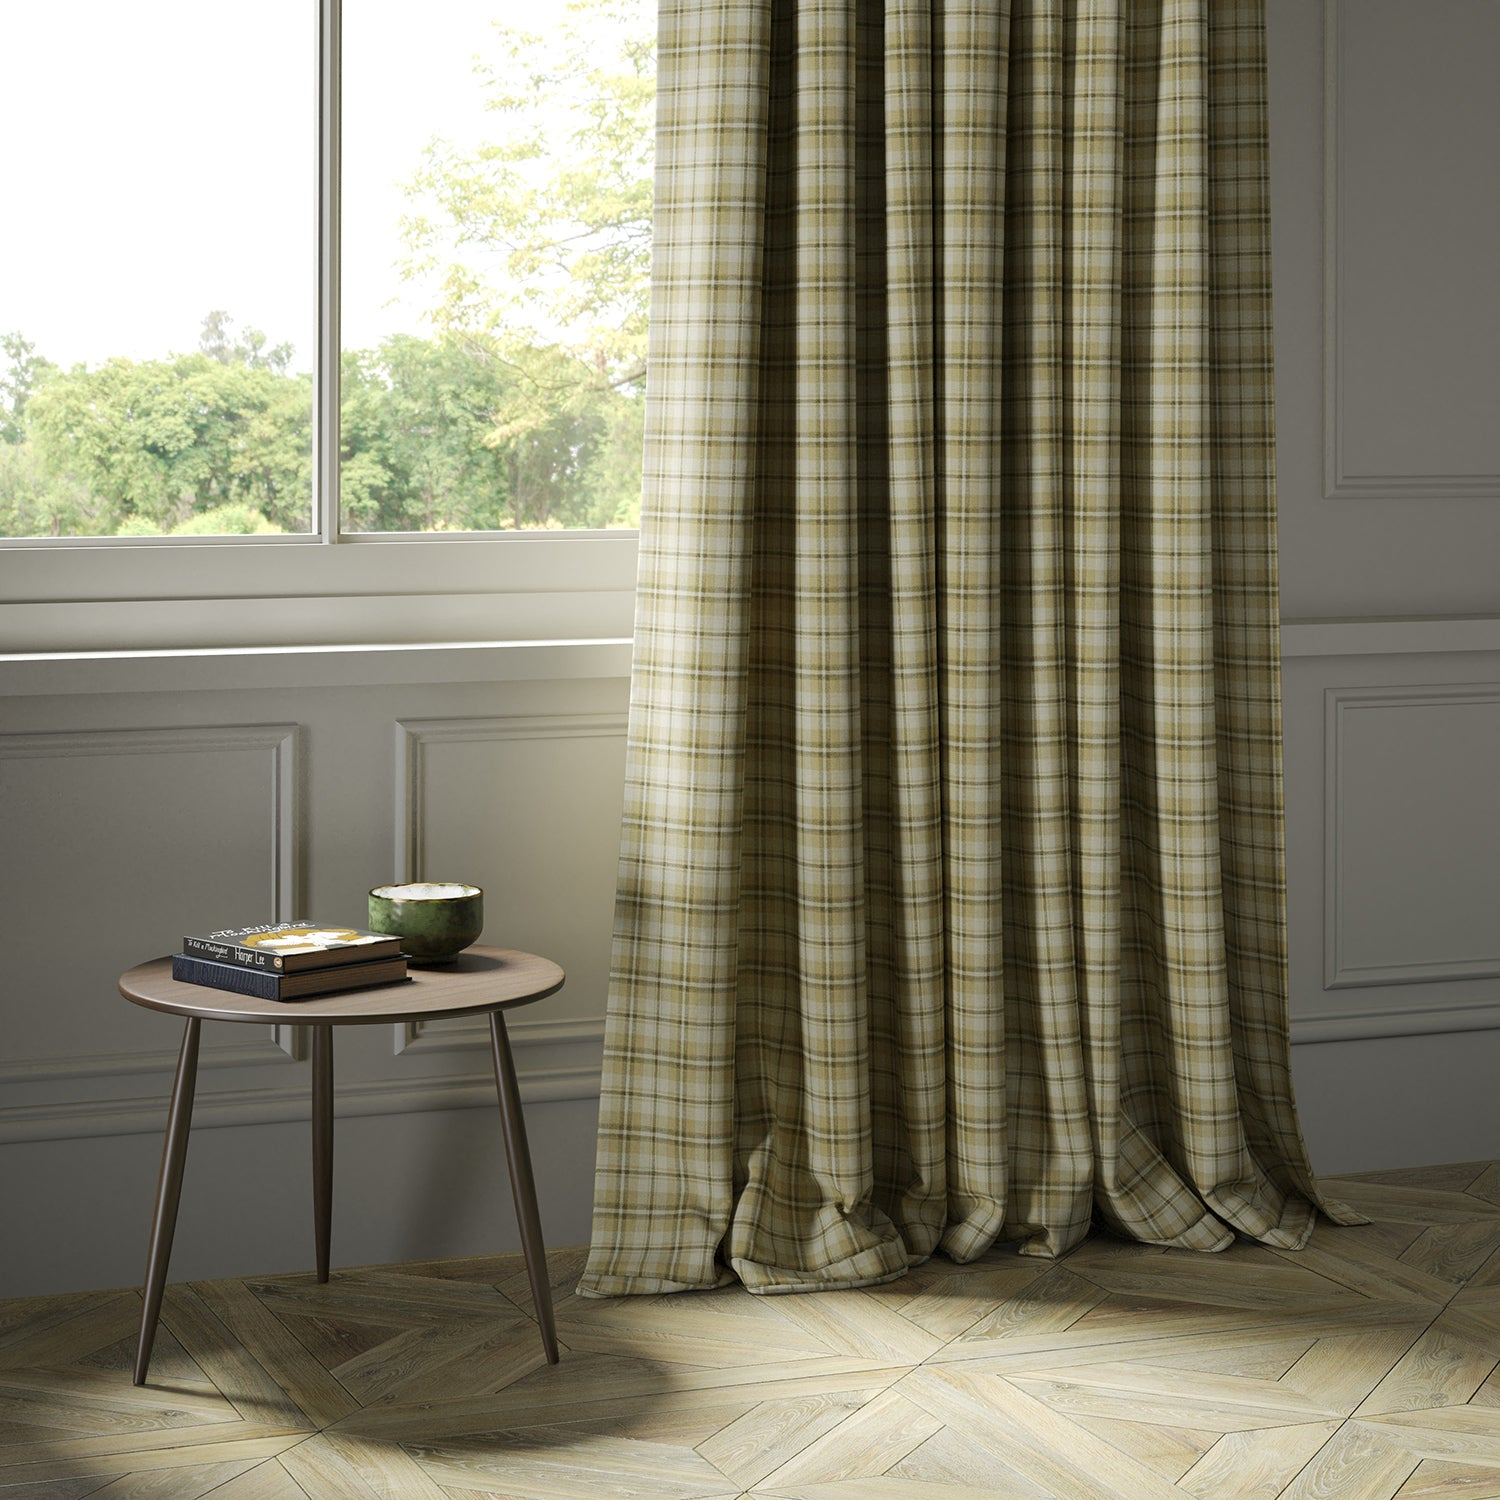 Curtains in a luxury Scottish cream and neutral wool tartan fabric